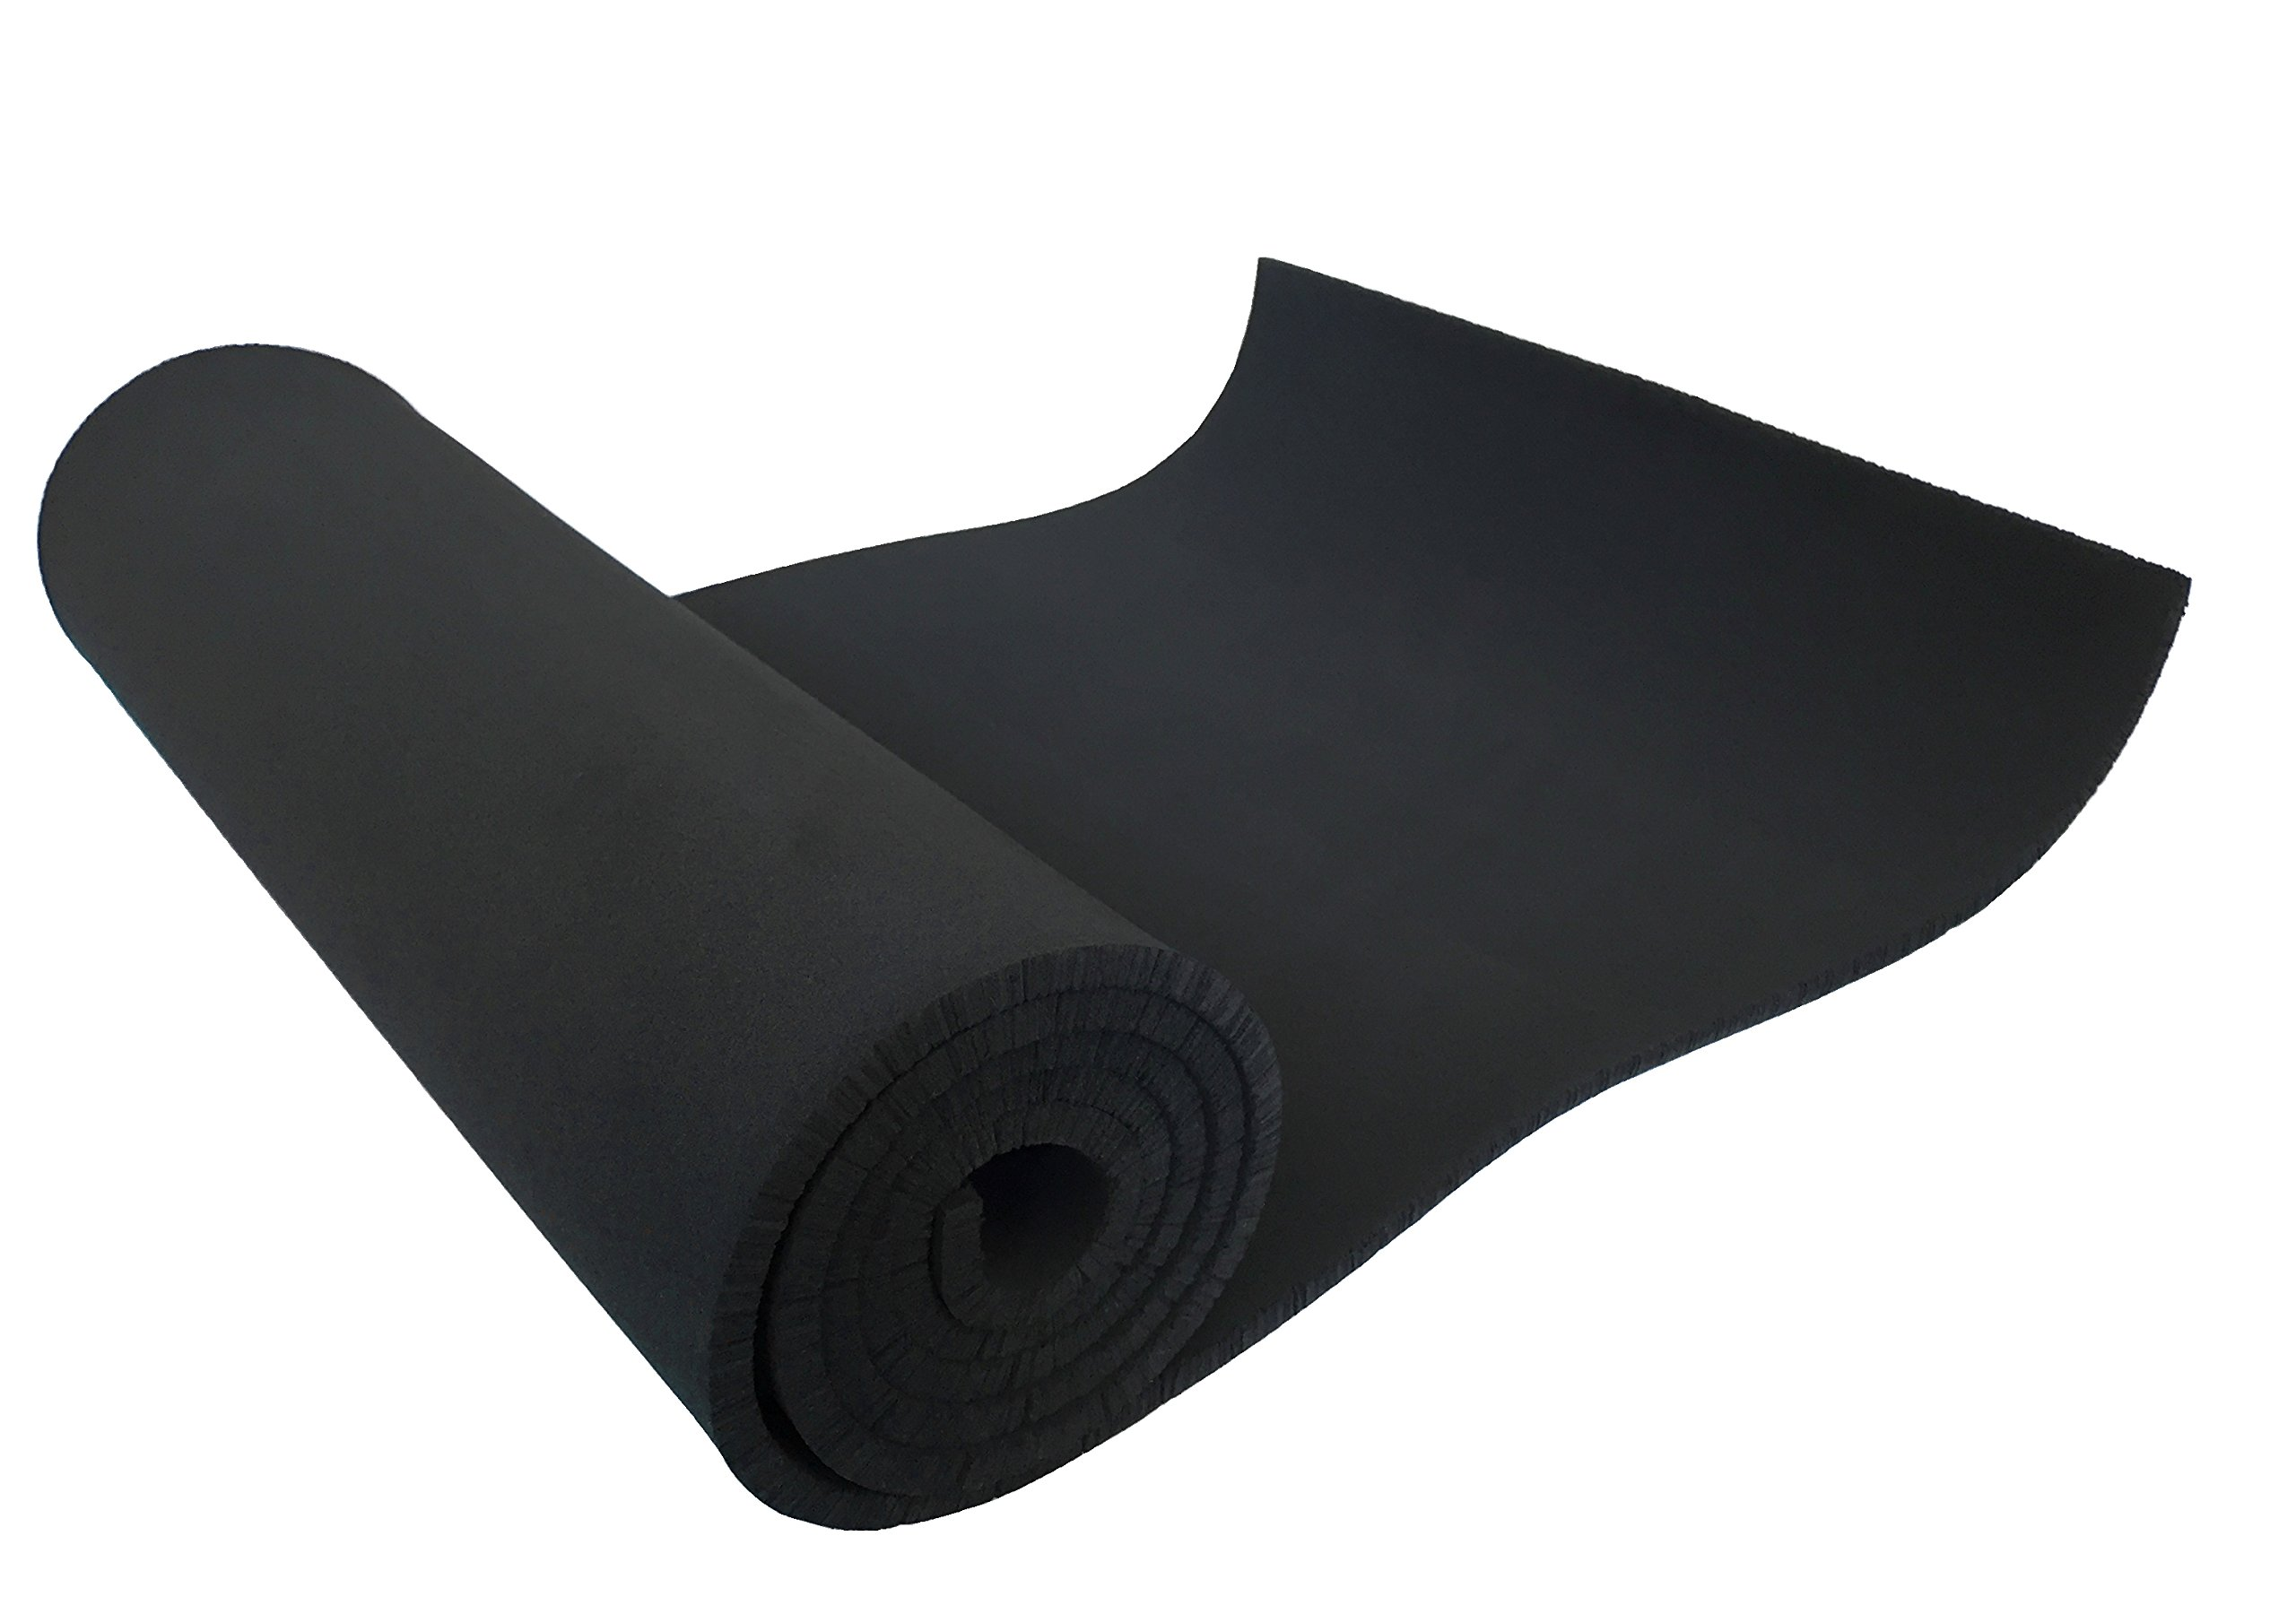 Xcel Large Neoprene Foam Sheet - 54'' Wide x 12'' Length x 1/4'' Soft/Medium for Cosplay, Costume, Padding, DIY, and Gaskets, Made in USA, Easy Cut Technology by Xcel